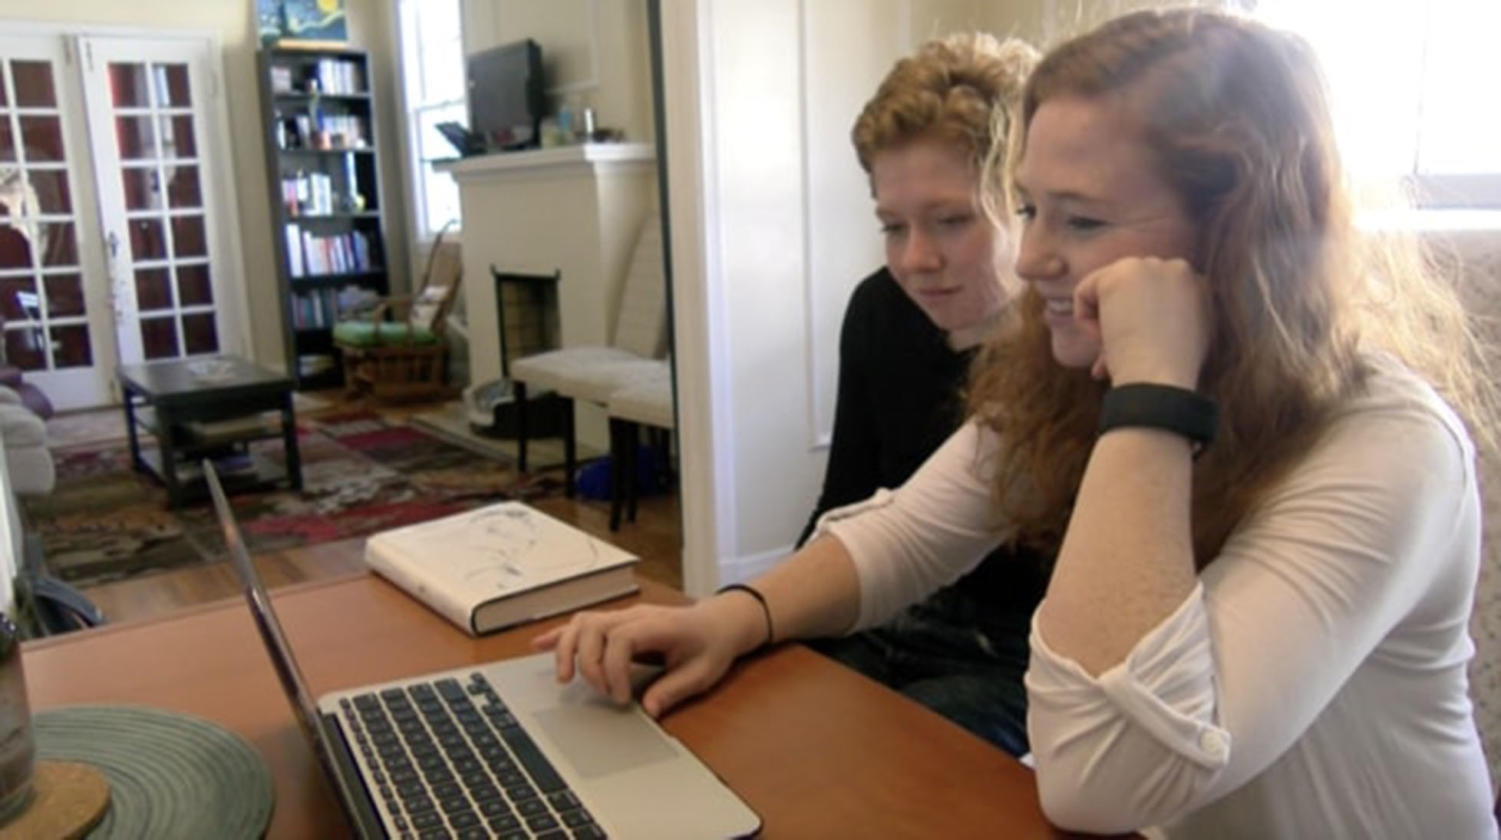 Bess Baria, environmental studies sophomore,  (left) and her sister Merrit Baria, marketing and psychology double major, (right) scroll through Facebook family photos March 7, 2018, in their off-campus apartment. Their father, David Baria announced his candidacy for the midterm U.S. Senate election in Mississippi in November. BRIAN WOLLITZ/ The Maroon.